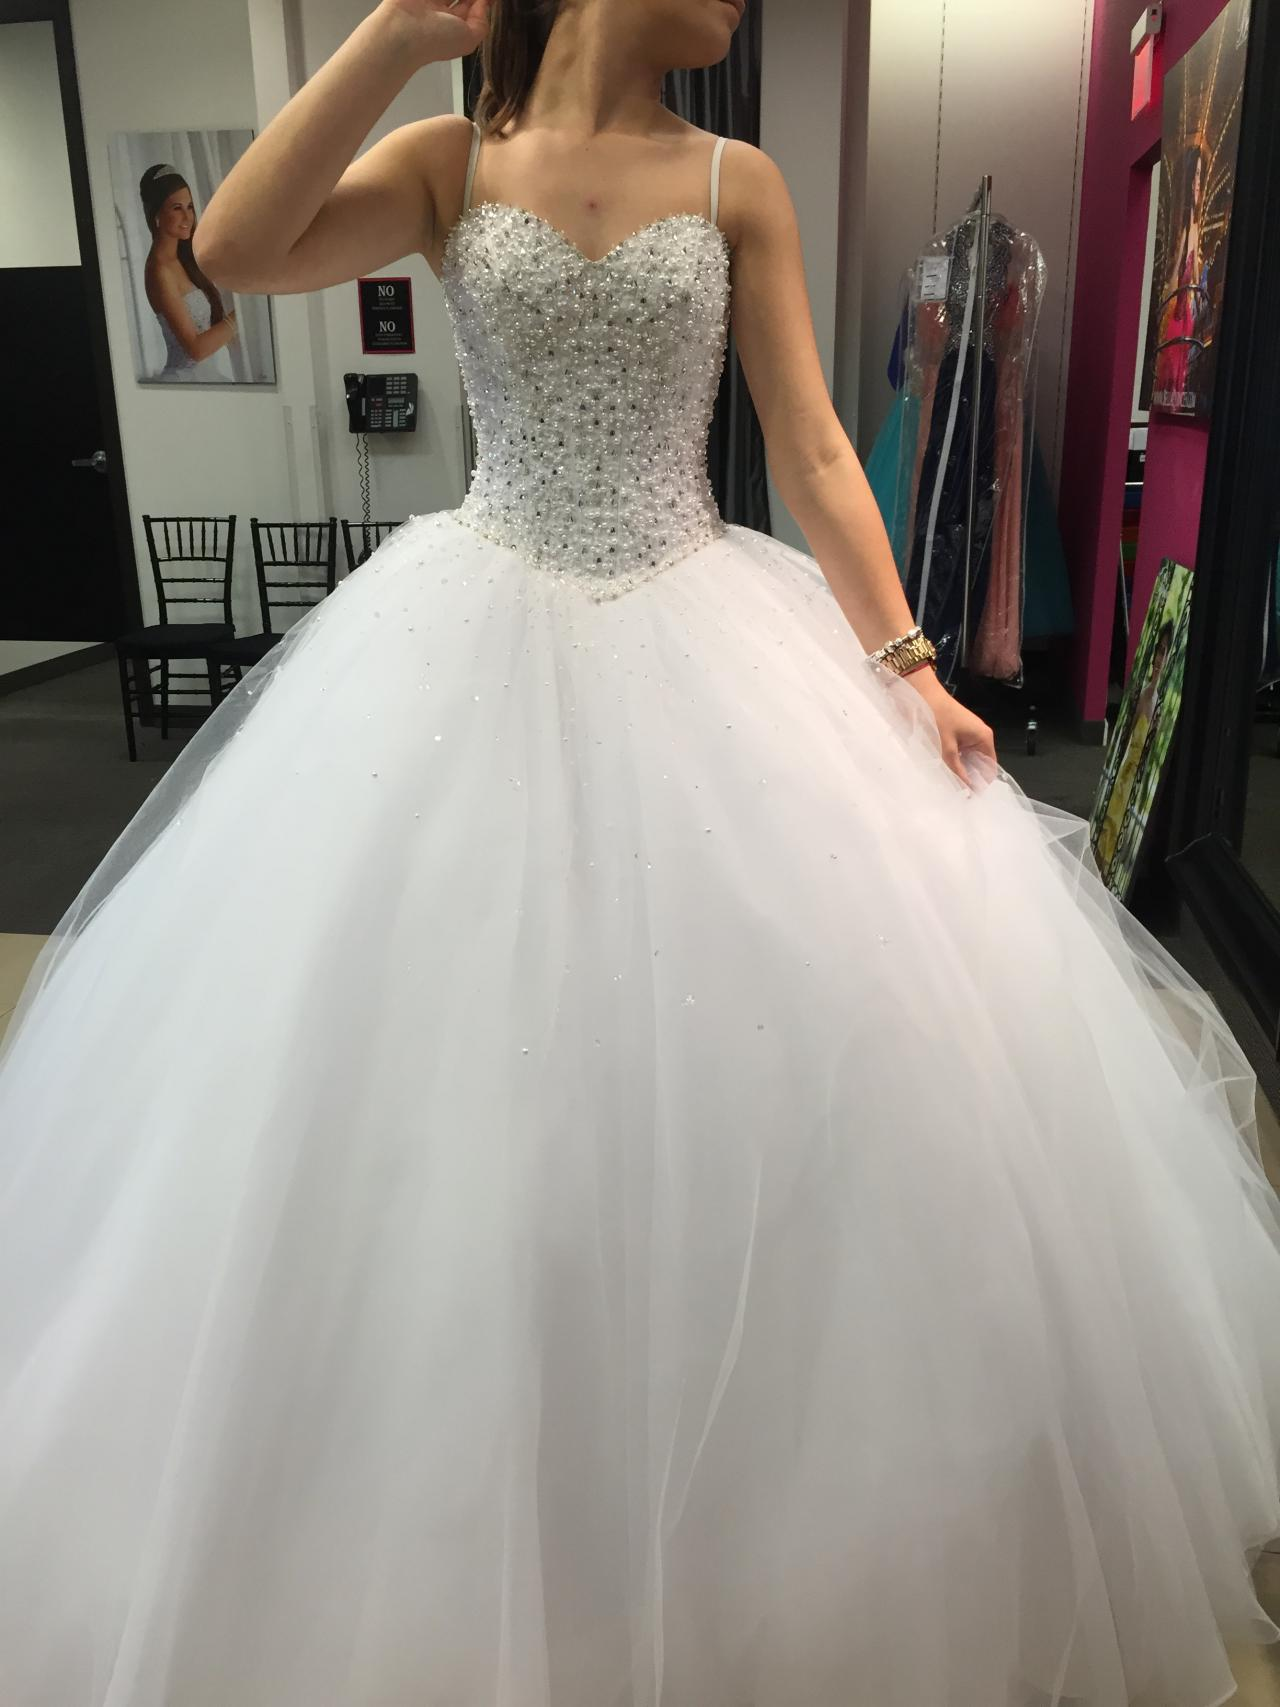 Ball gown wedding dresses beaded wedding dresses 2015 for Big white wedding dresses